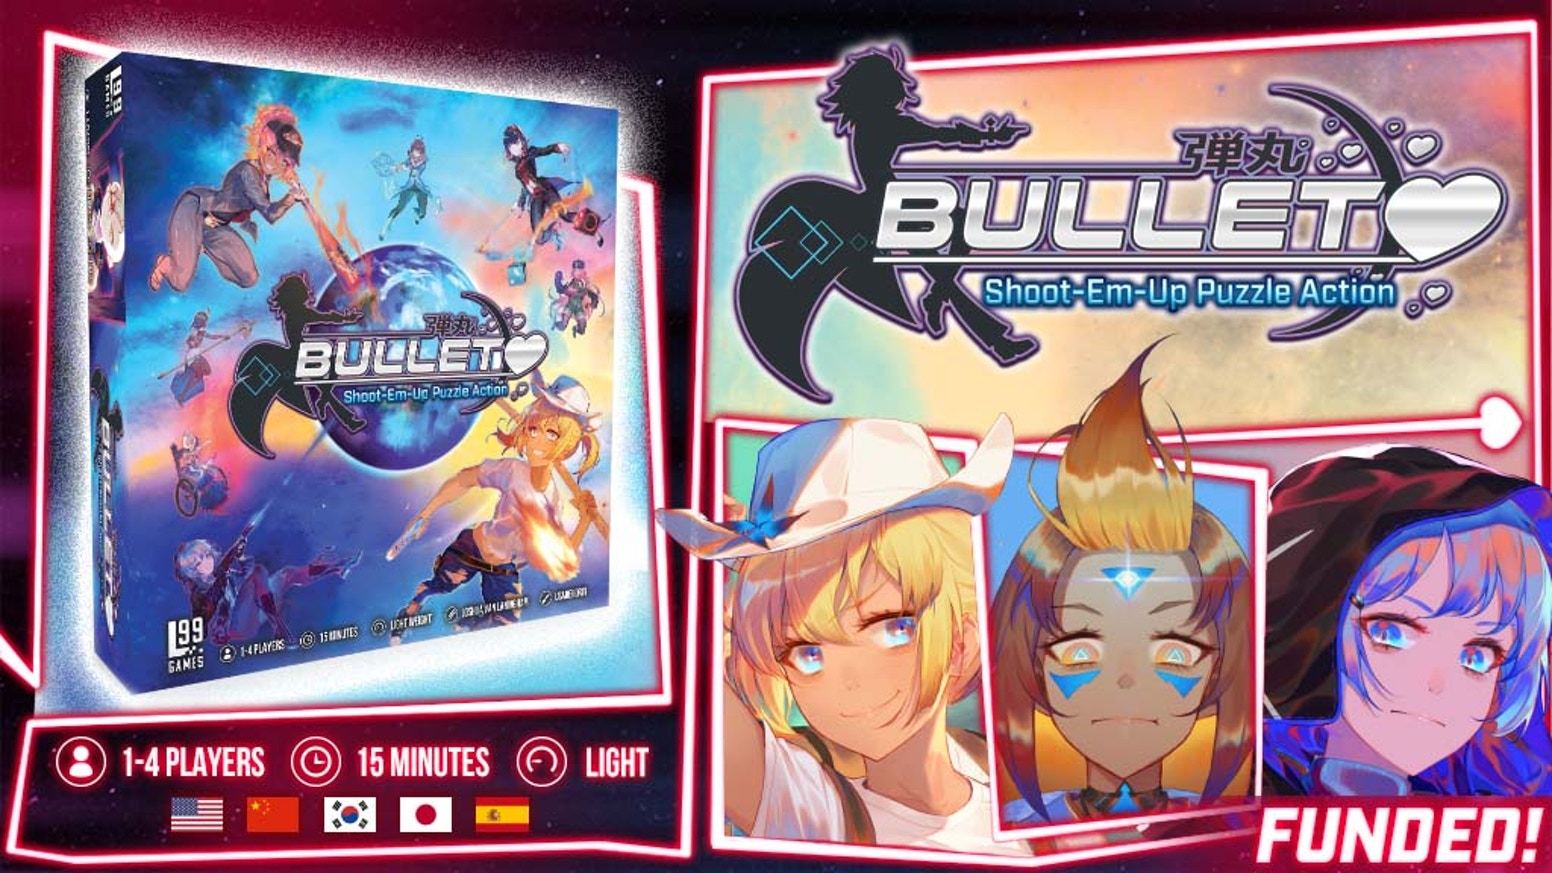 A puzzle-driven, real-time, SHMUP-inspired board game featuring awesome anime-style artwork and a magical cast!